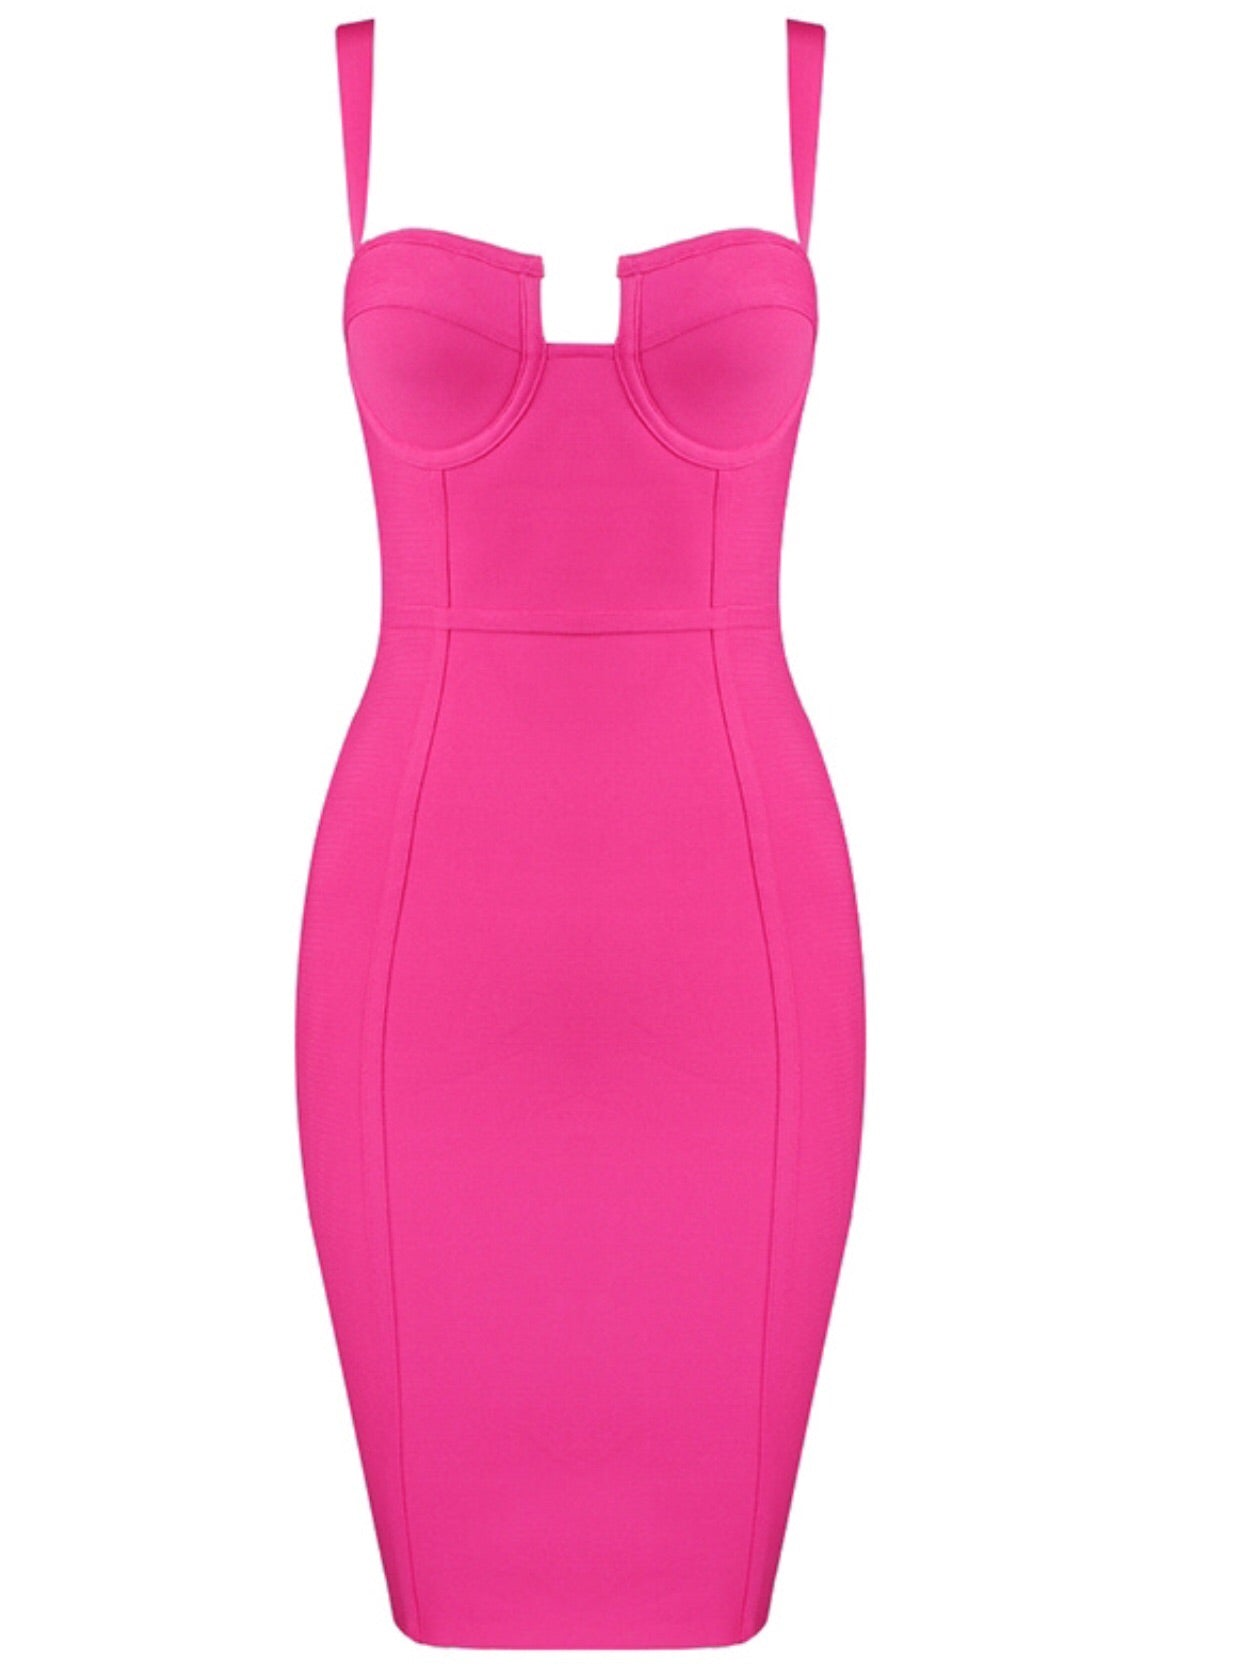 Alivia Short Spaghetti Strap Bandage Dress- Hot Pink